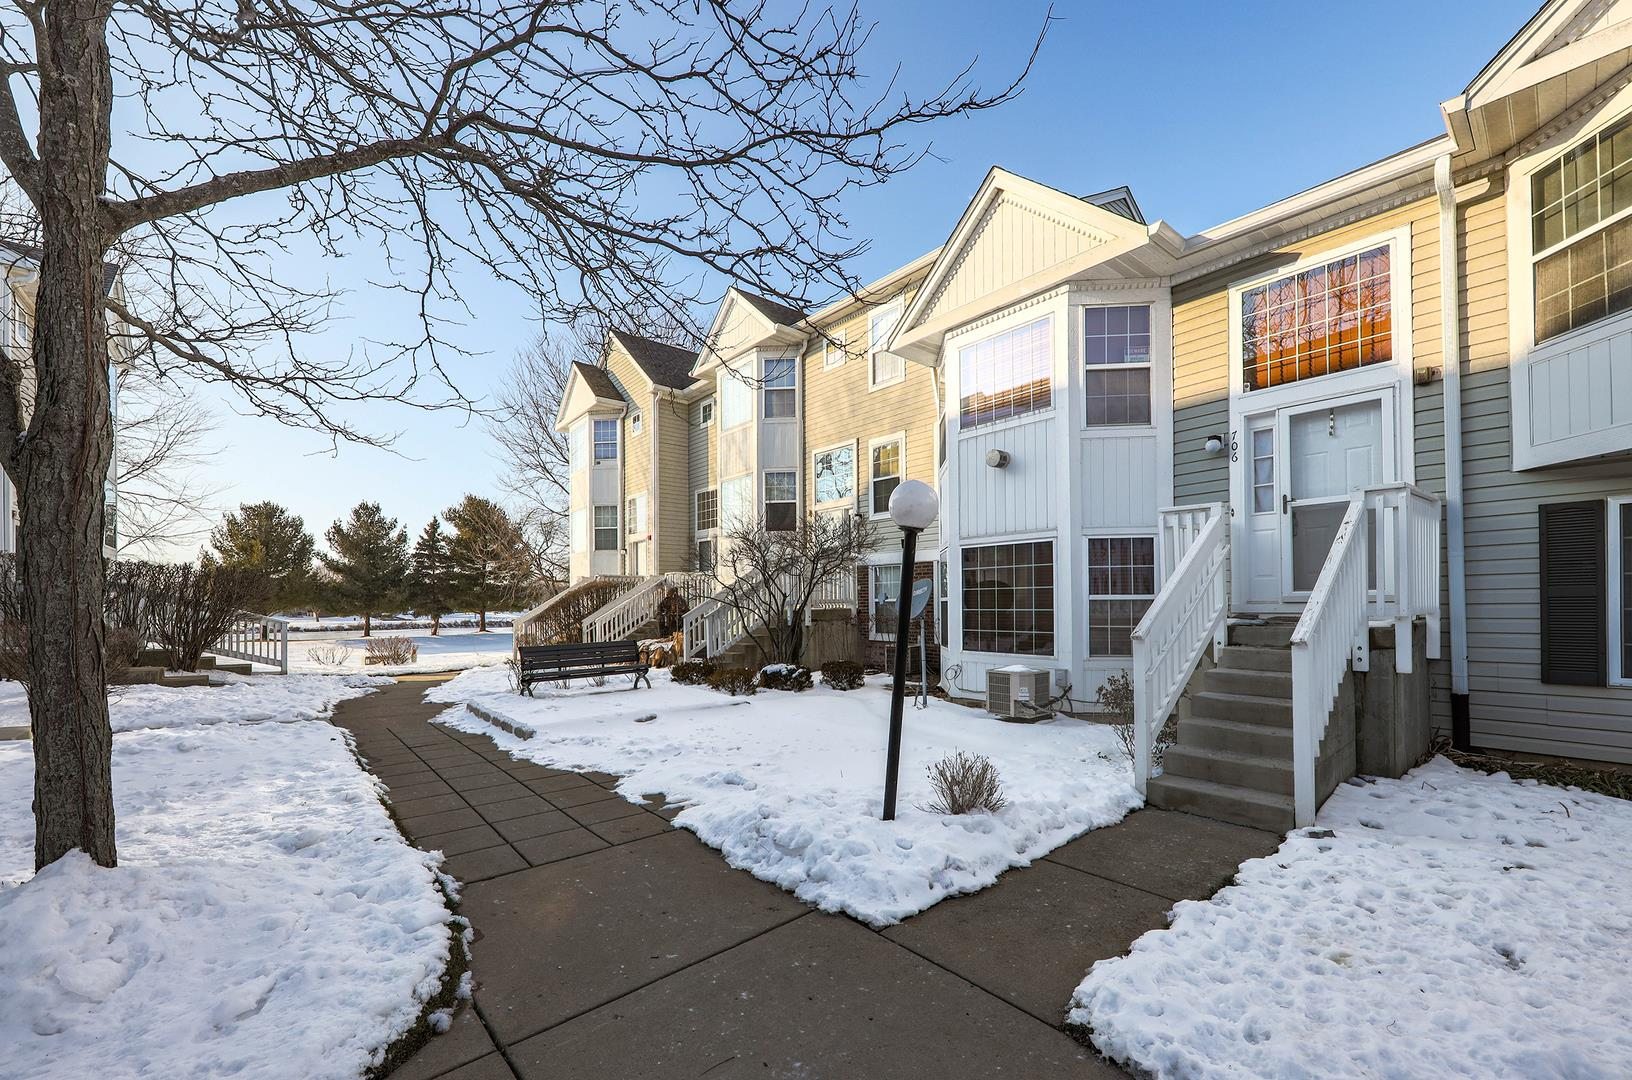 706 Hidden Creek Lane #706, North Aurora, IL 60542 - #: 10970237